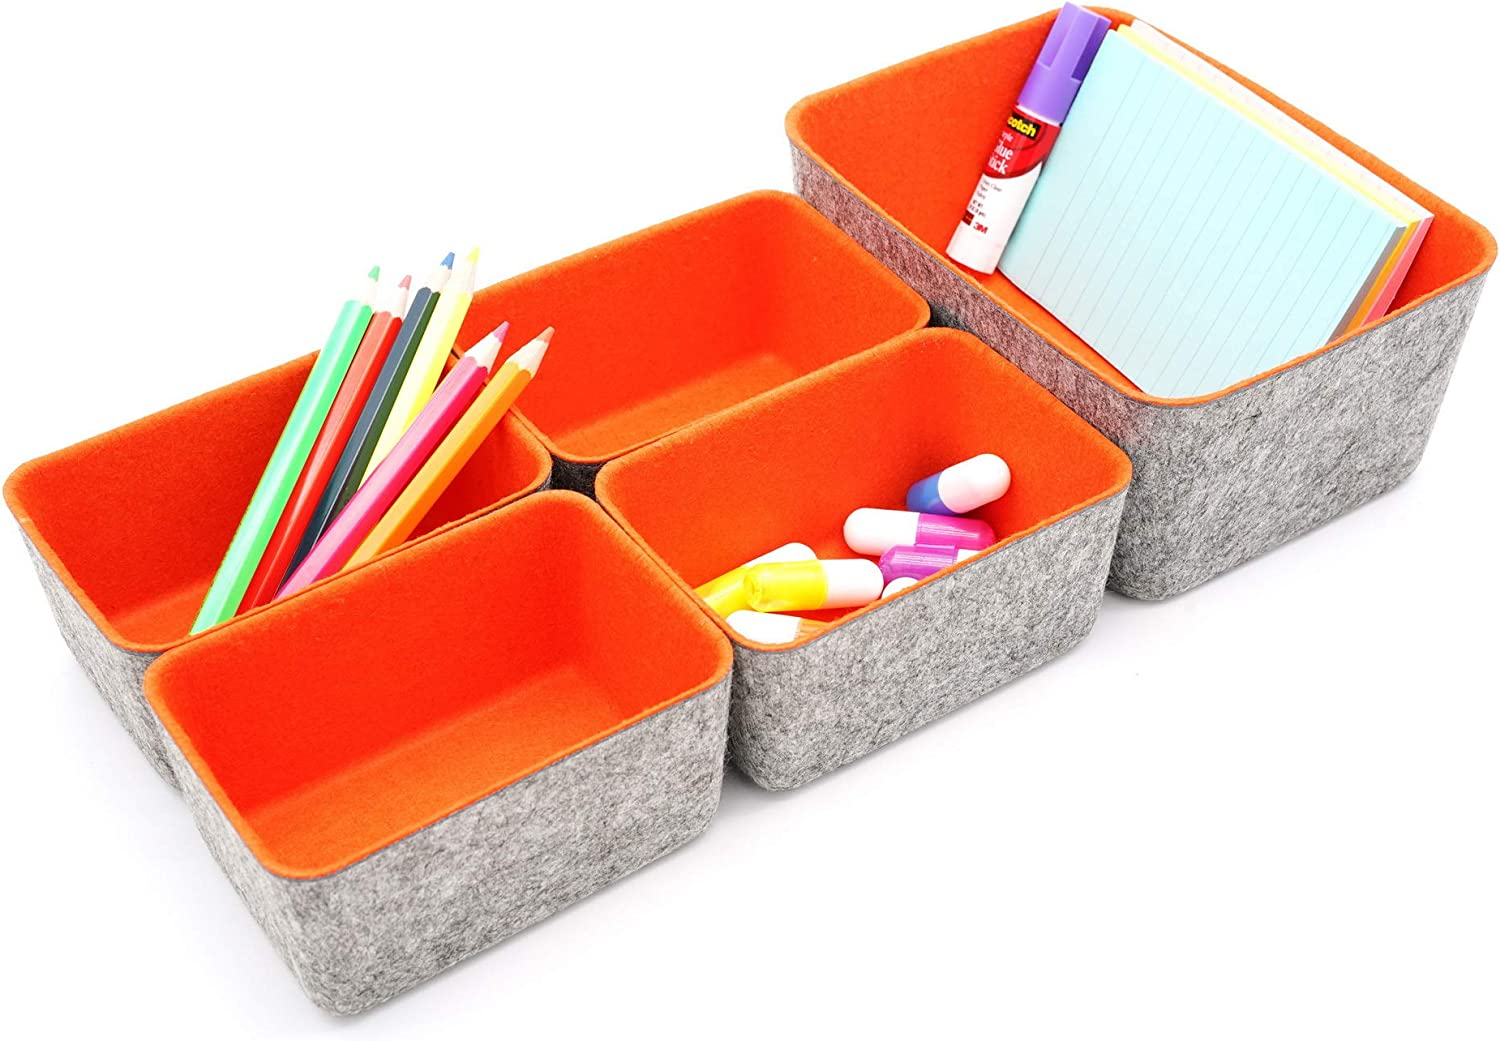 Welaxy office Drawer organizers bins Deep draw organiser Felt storage bin drawers Desk draw dividers boxes for toys makeup jewelery rolled ties organizing, 5 pack (Orange)